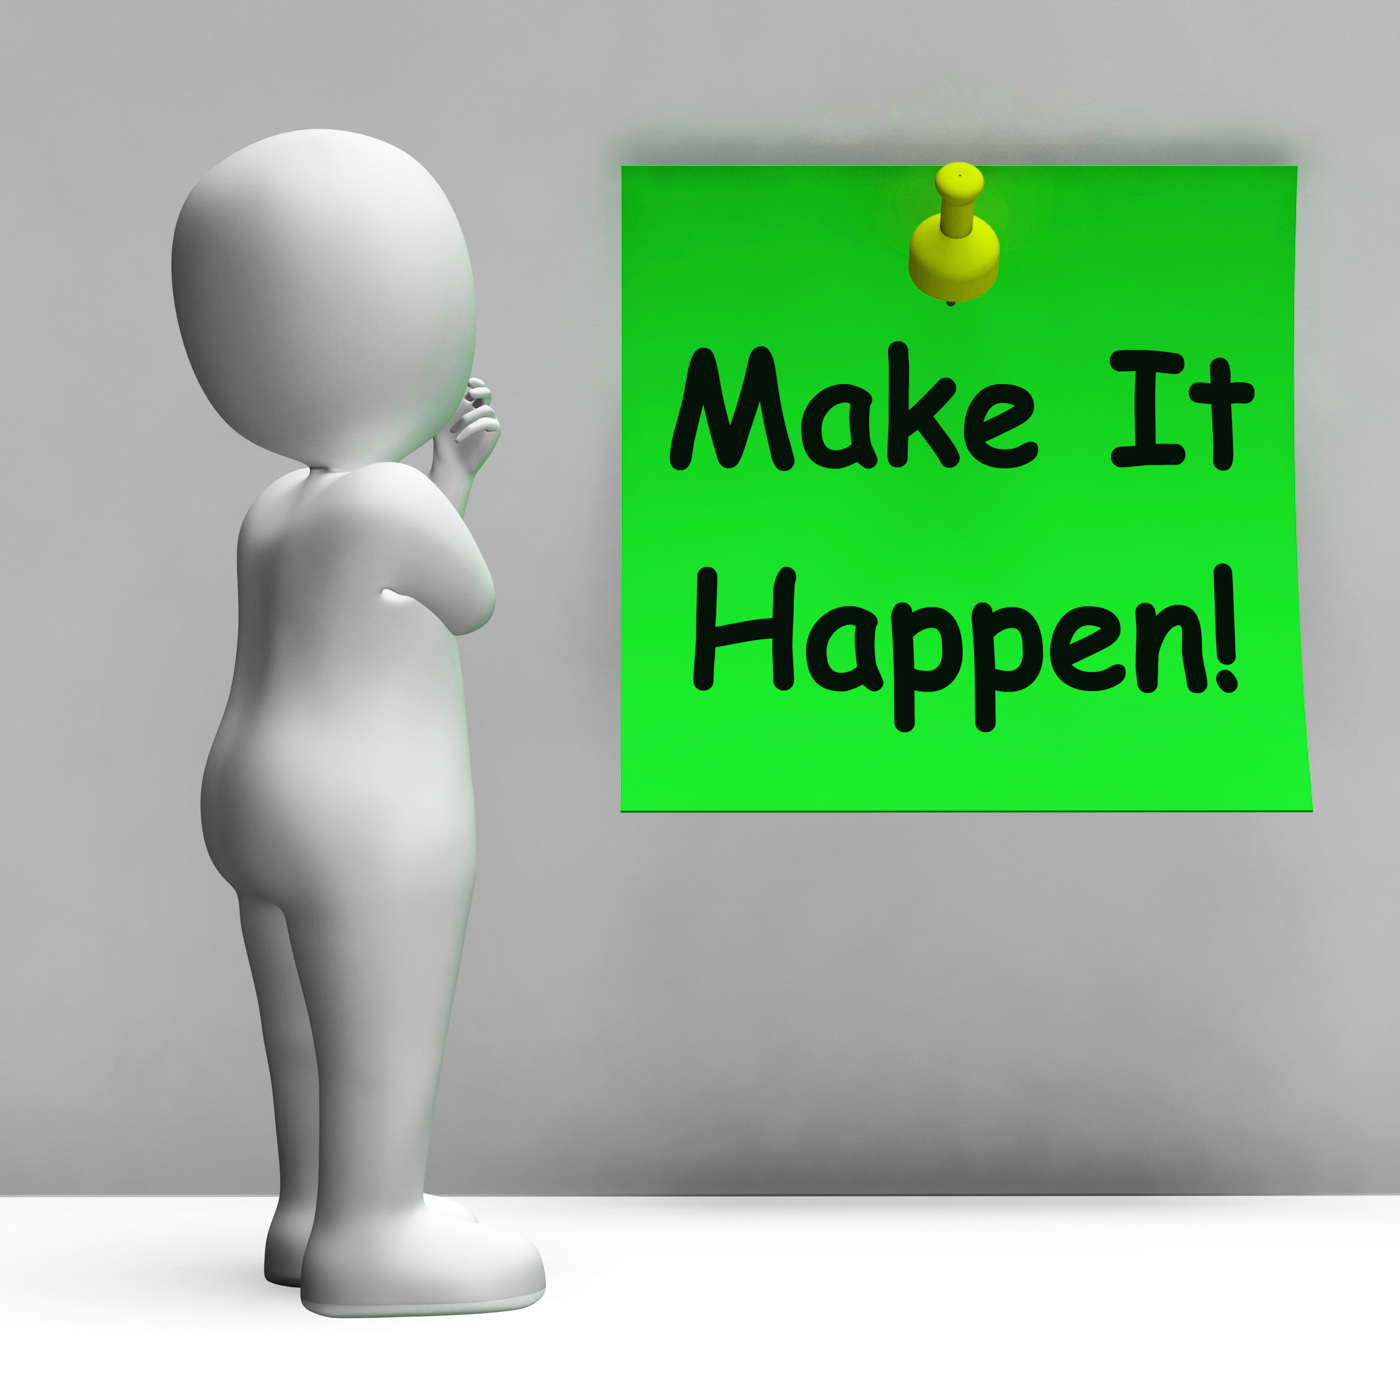 Make it happen note means take action photo